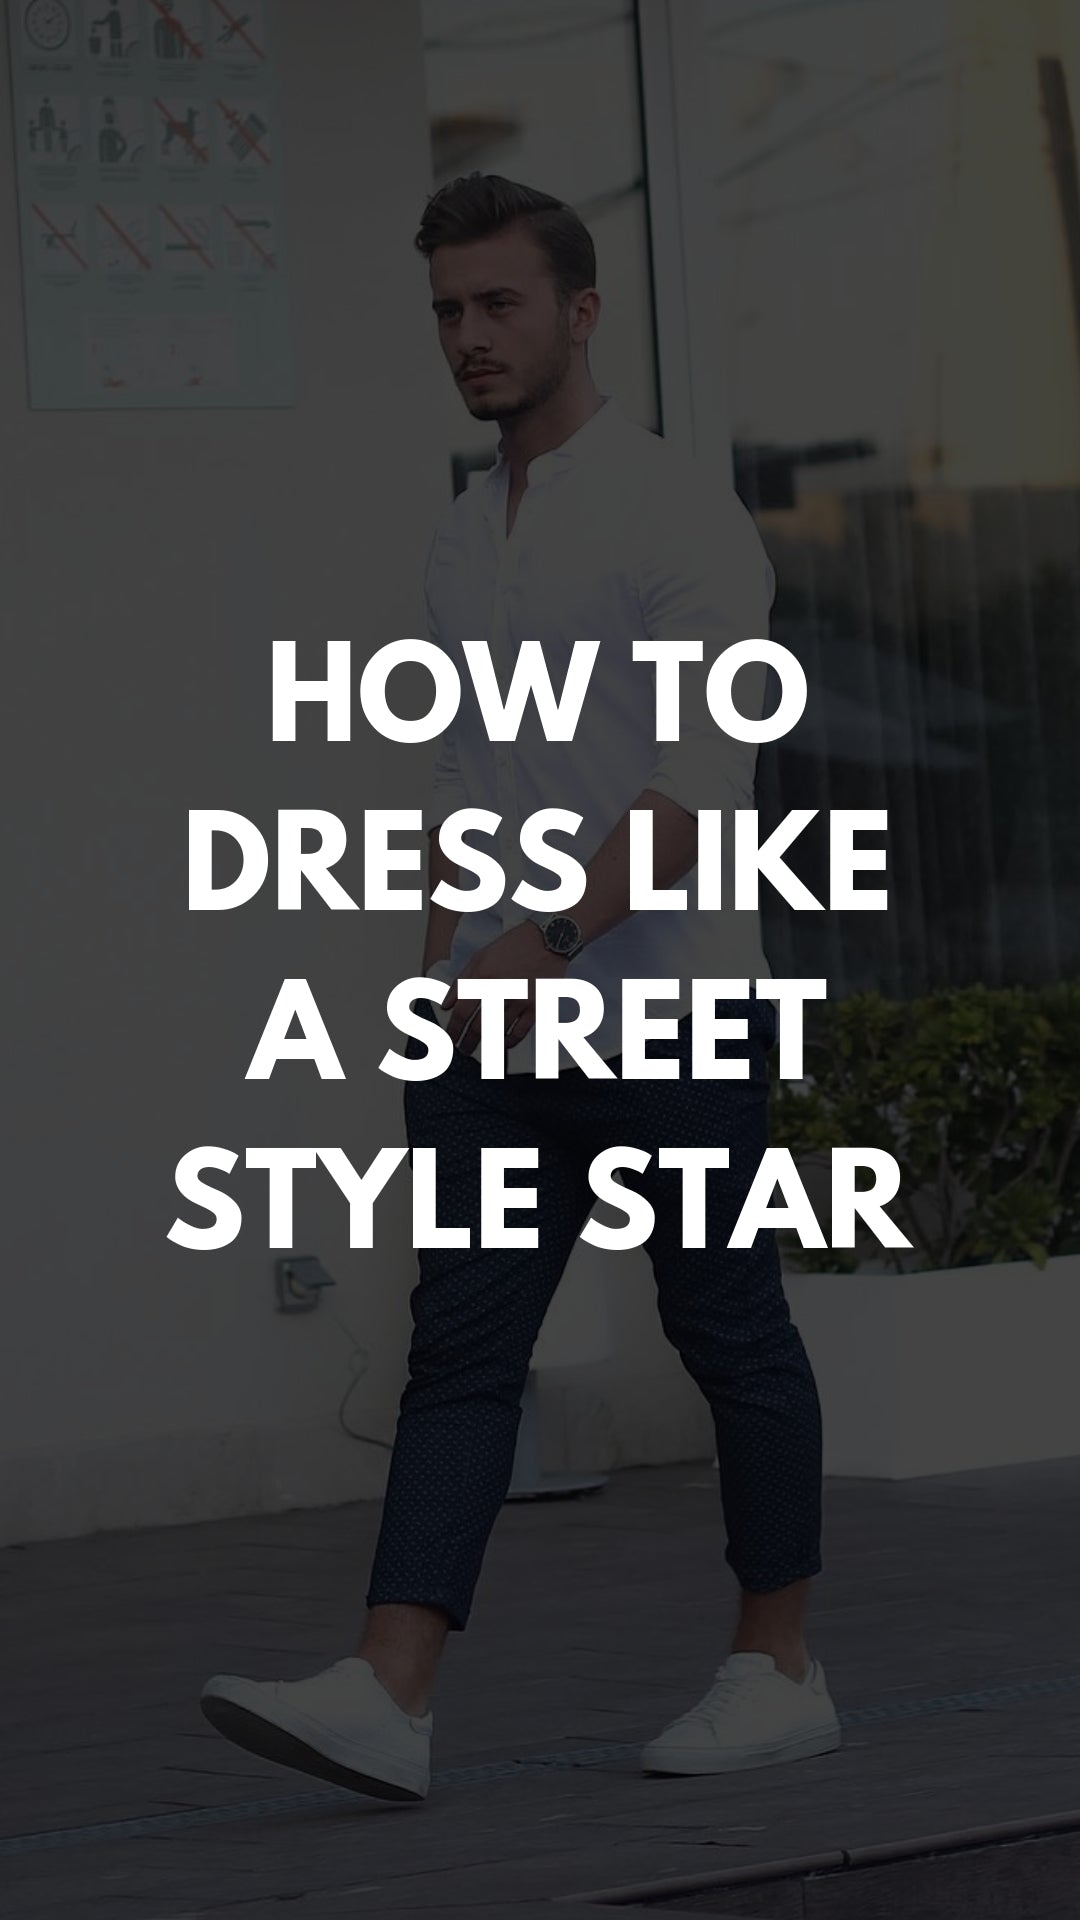 5 Street Style Looks I Fully Intend On Copying In 2019 #streetstyle #mensfashion #casualstyle